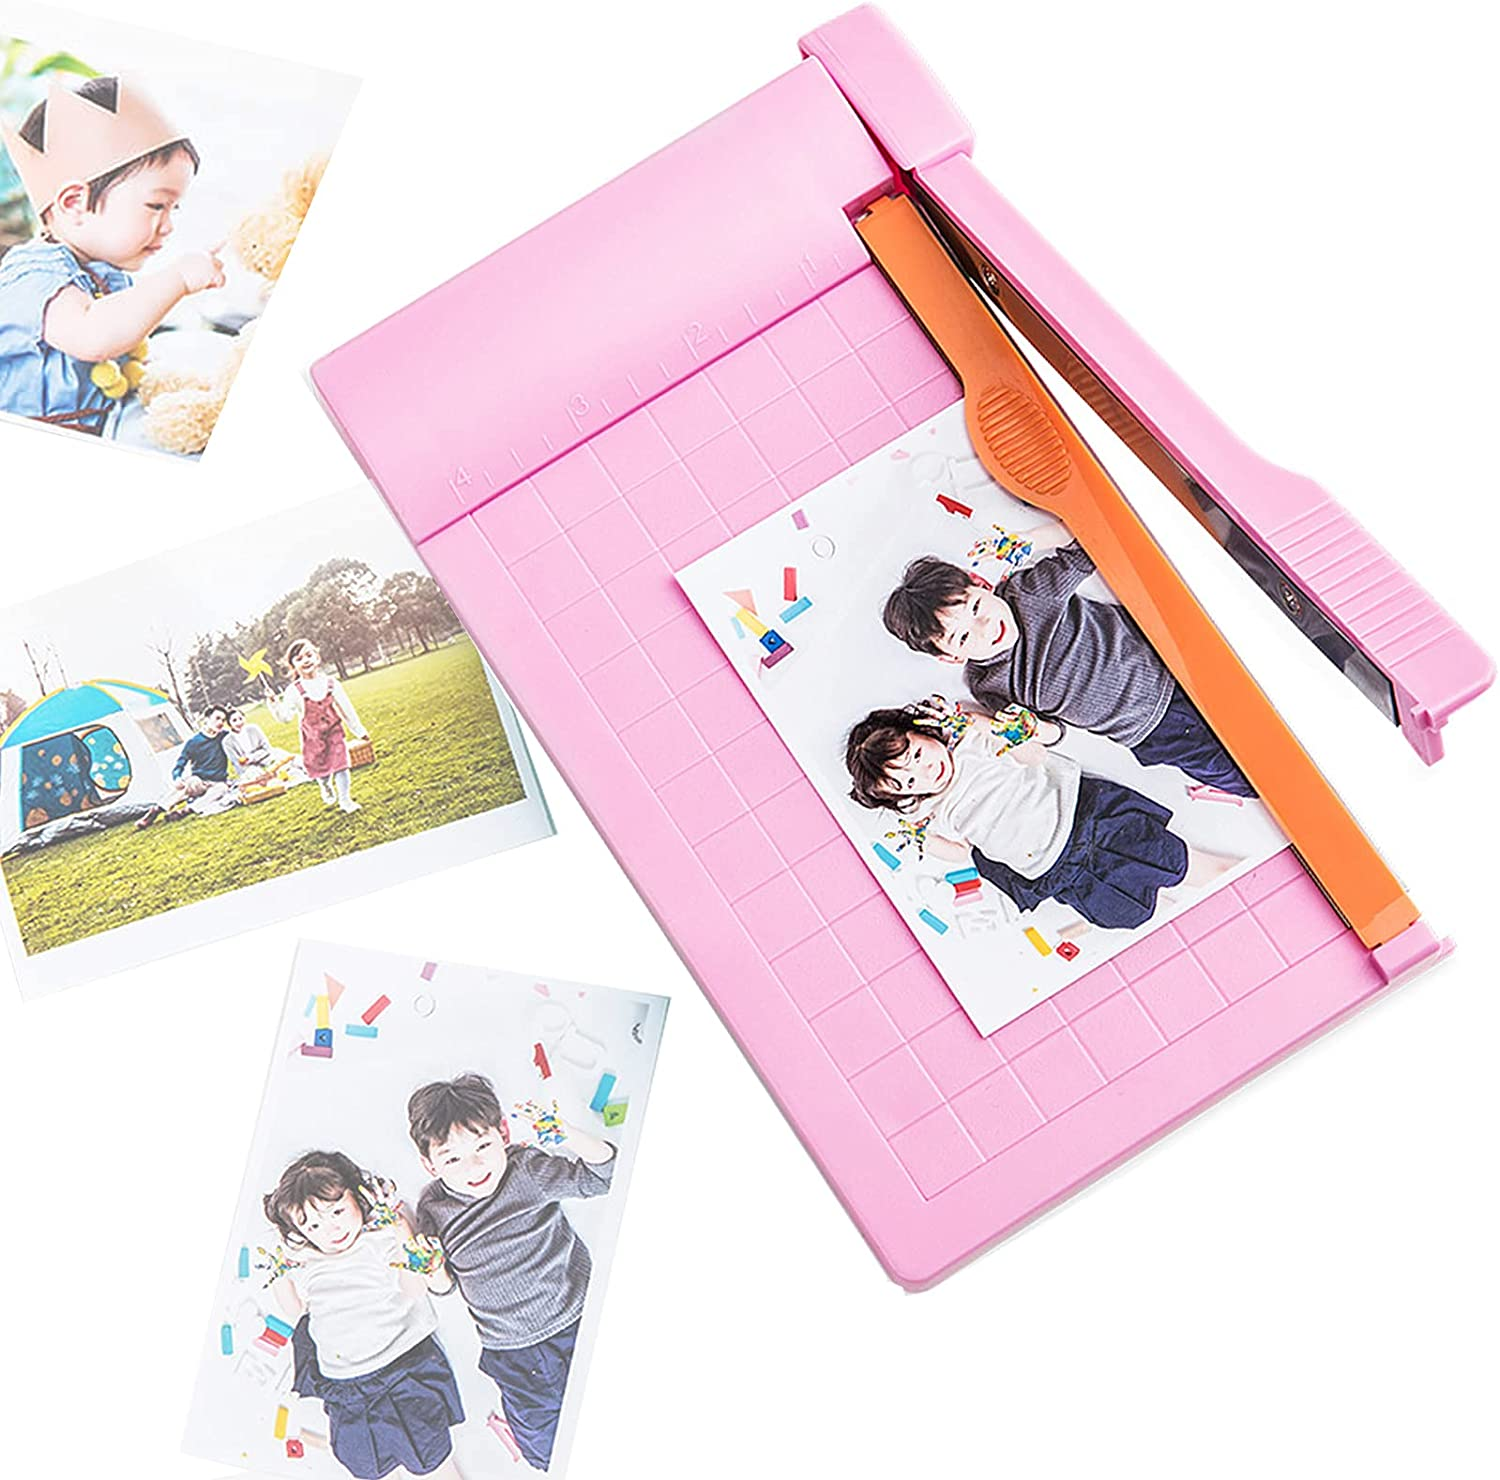 GKH2 Portable Limited time trial price Guillotine Paper for A4 Photo Trimmer Cheap mail order sales with